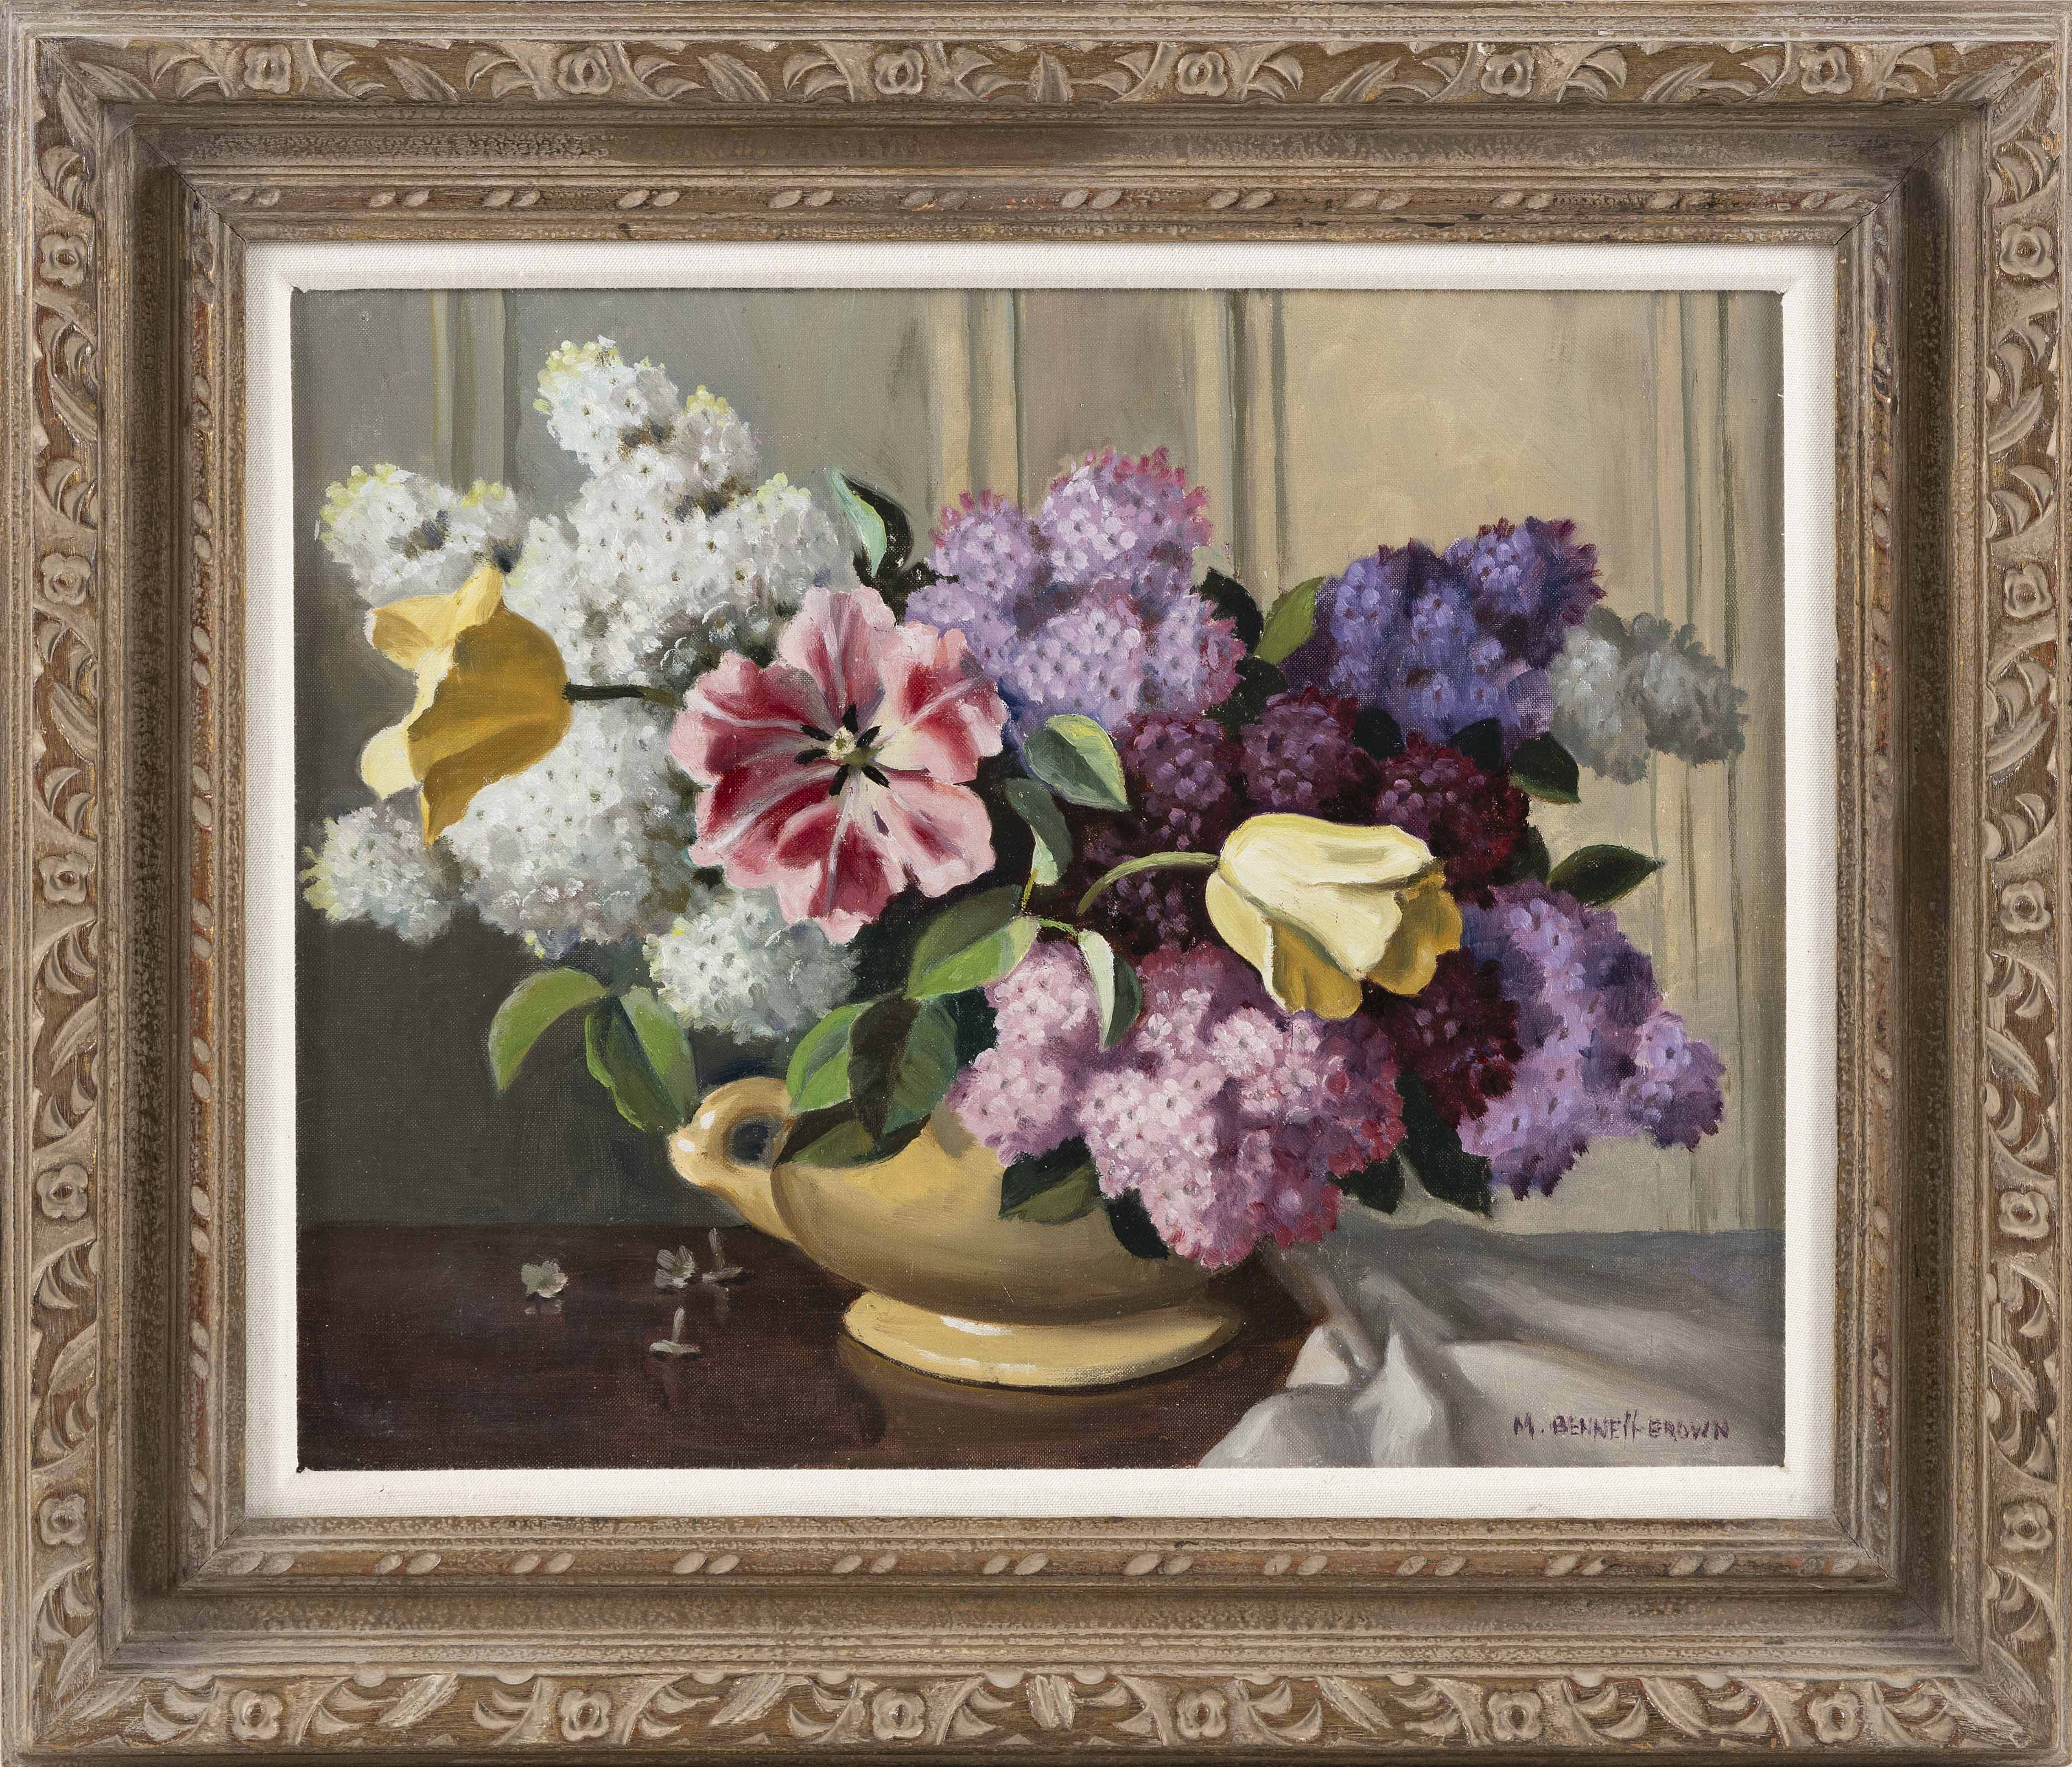 MAE BENNETT BROWN (America/England, 1887-1973), Still life of lilacs and tulips., Oil on canvas, 16